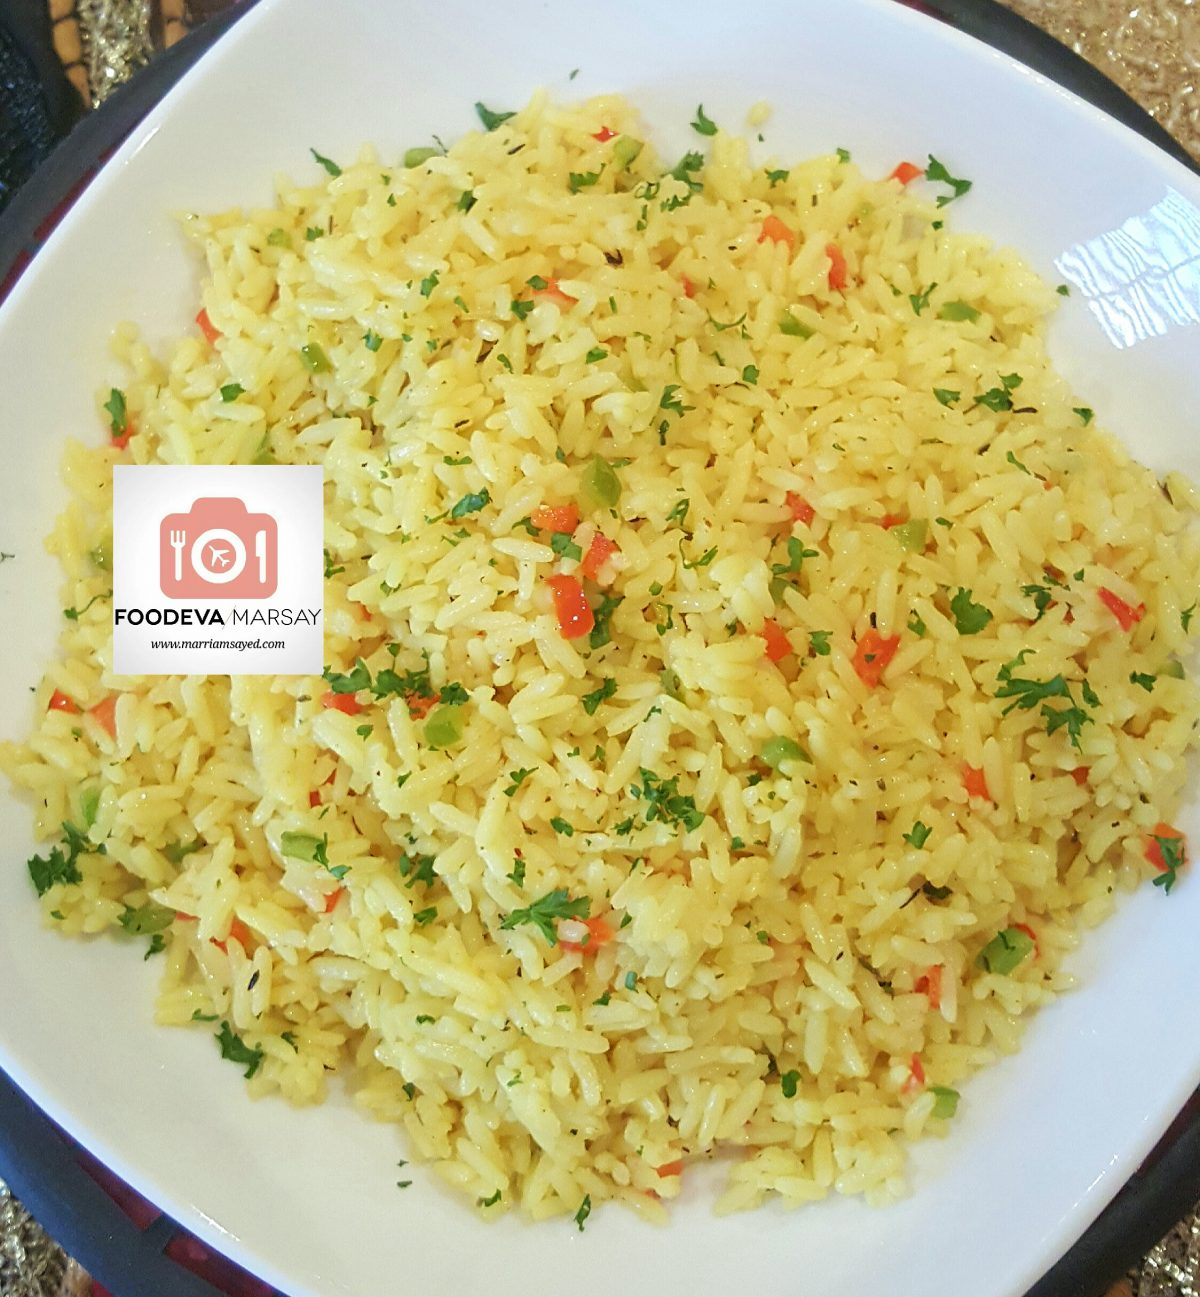 savoury-rice-with-peppers4-1200x1297.jpg